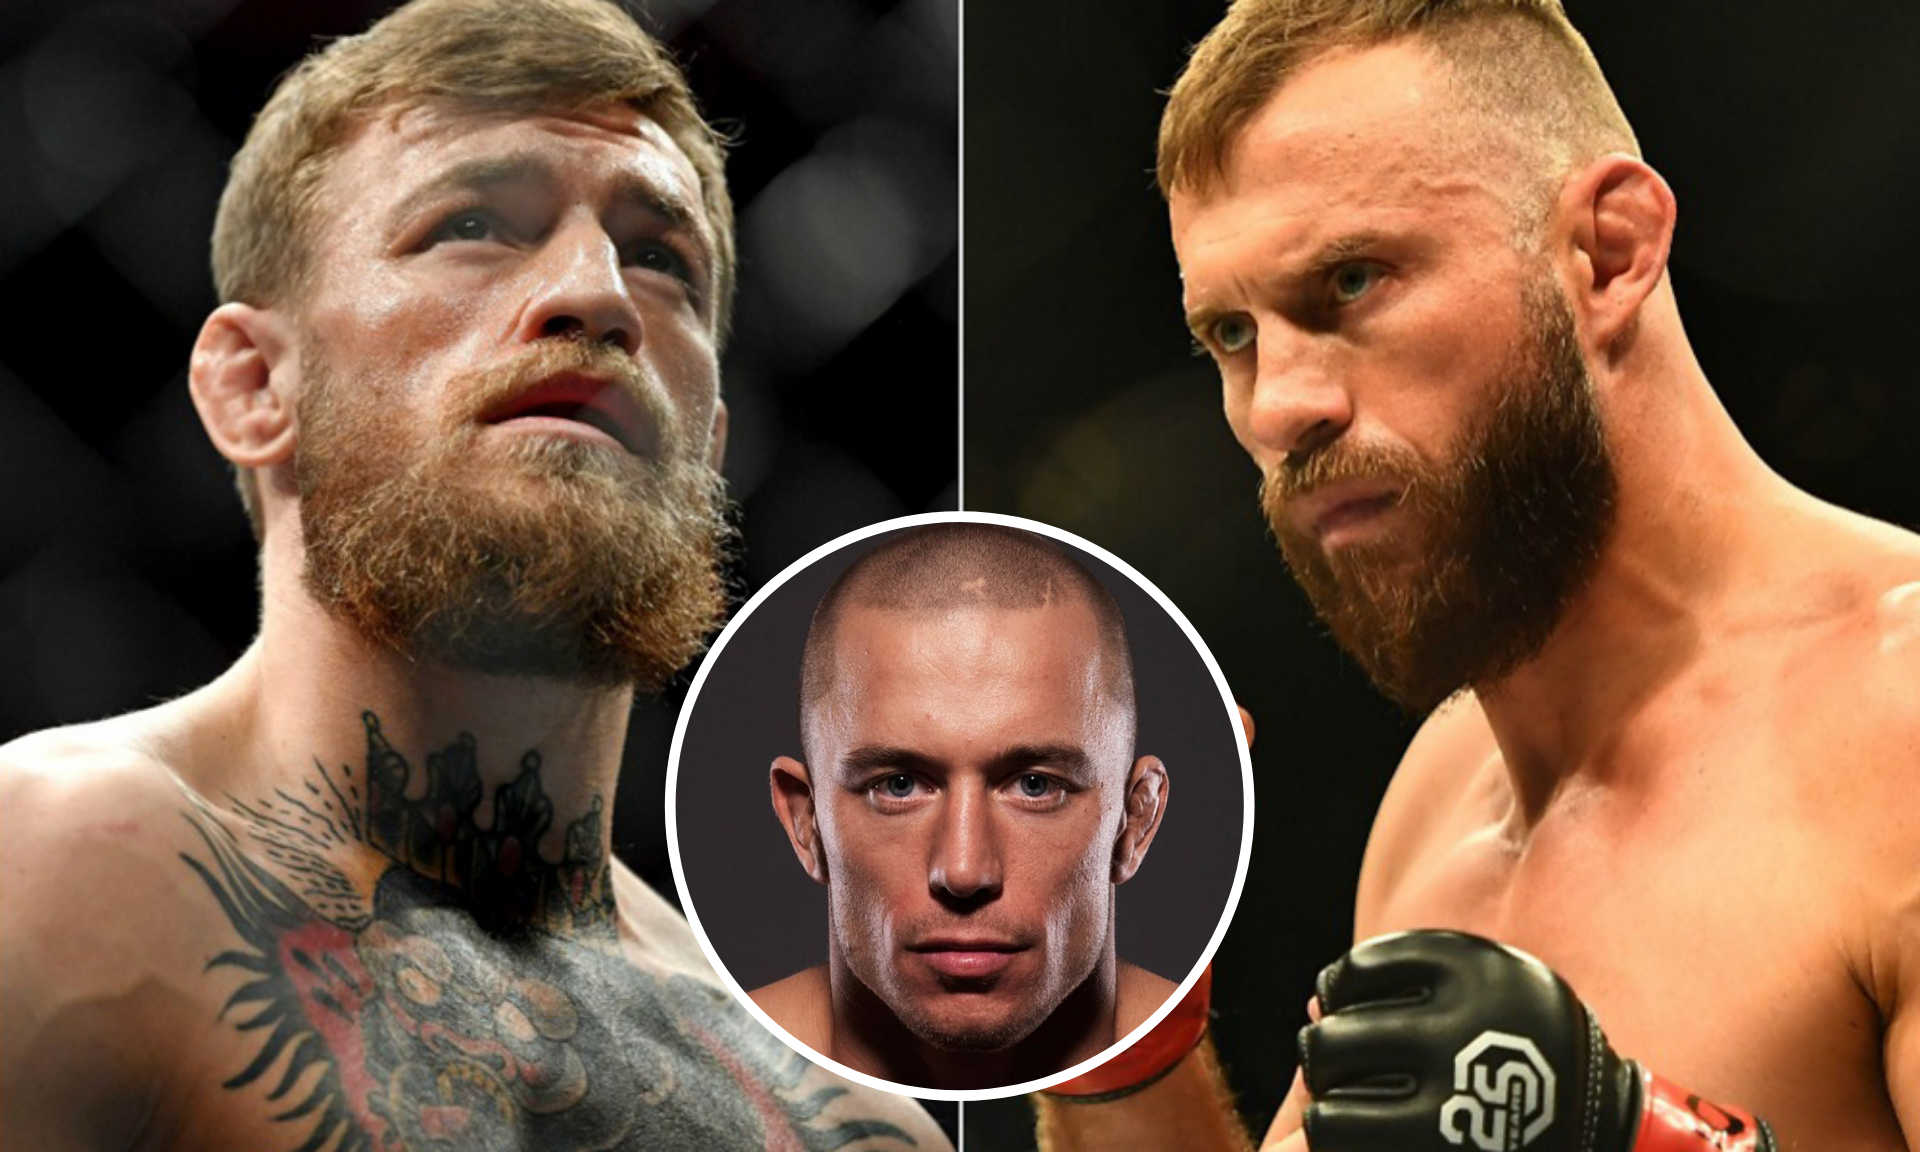 GSP: Cowboy will get caught by McGregor in round one unless he uses his wrestling - GSP